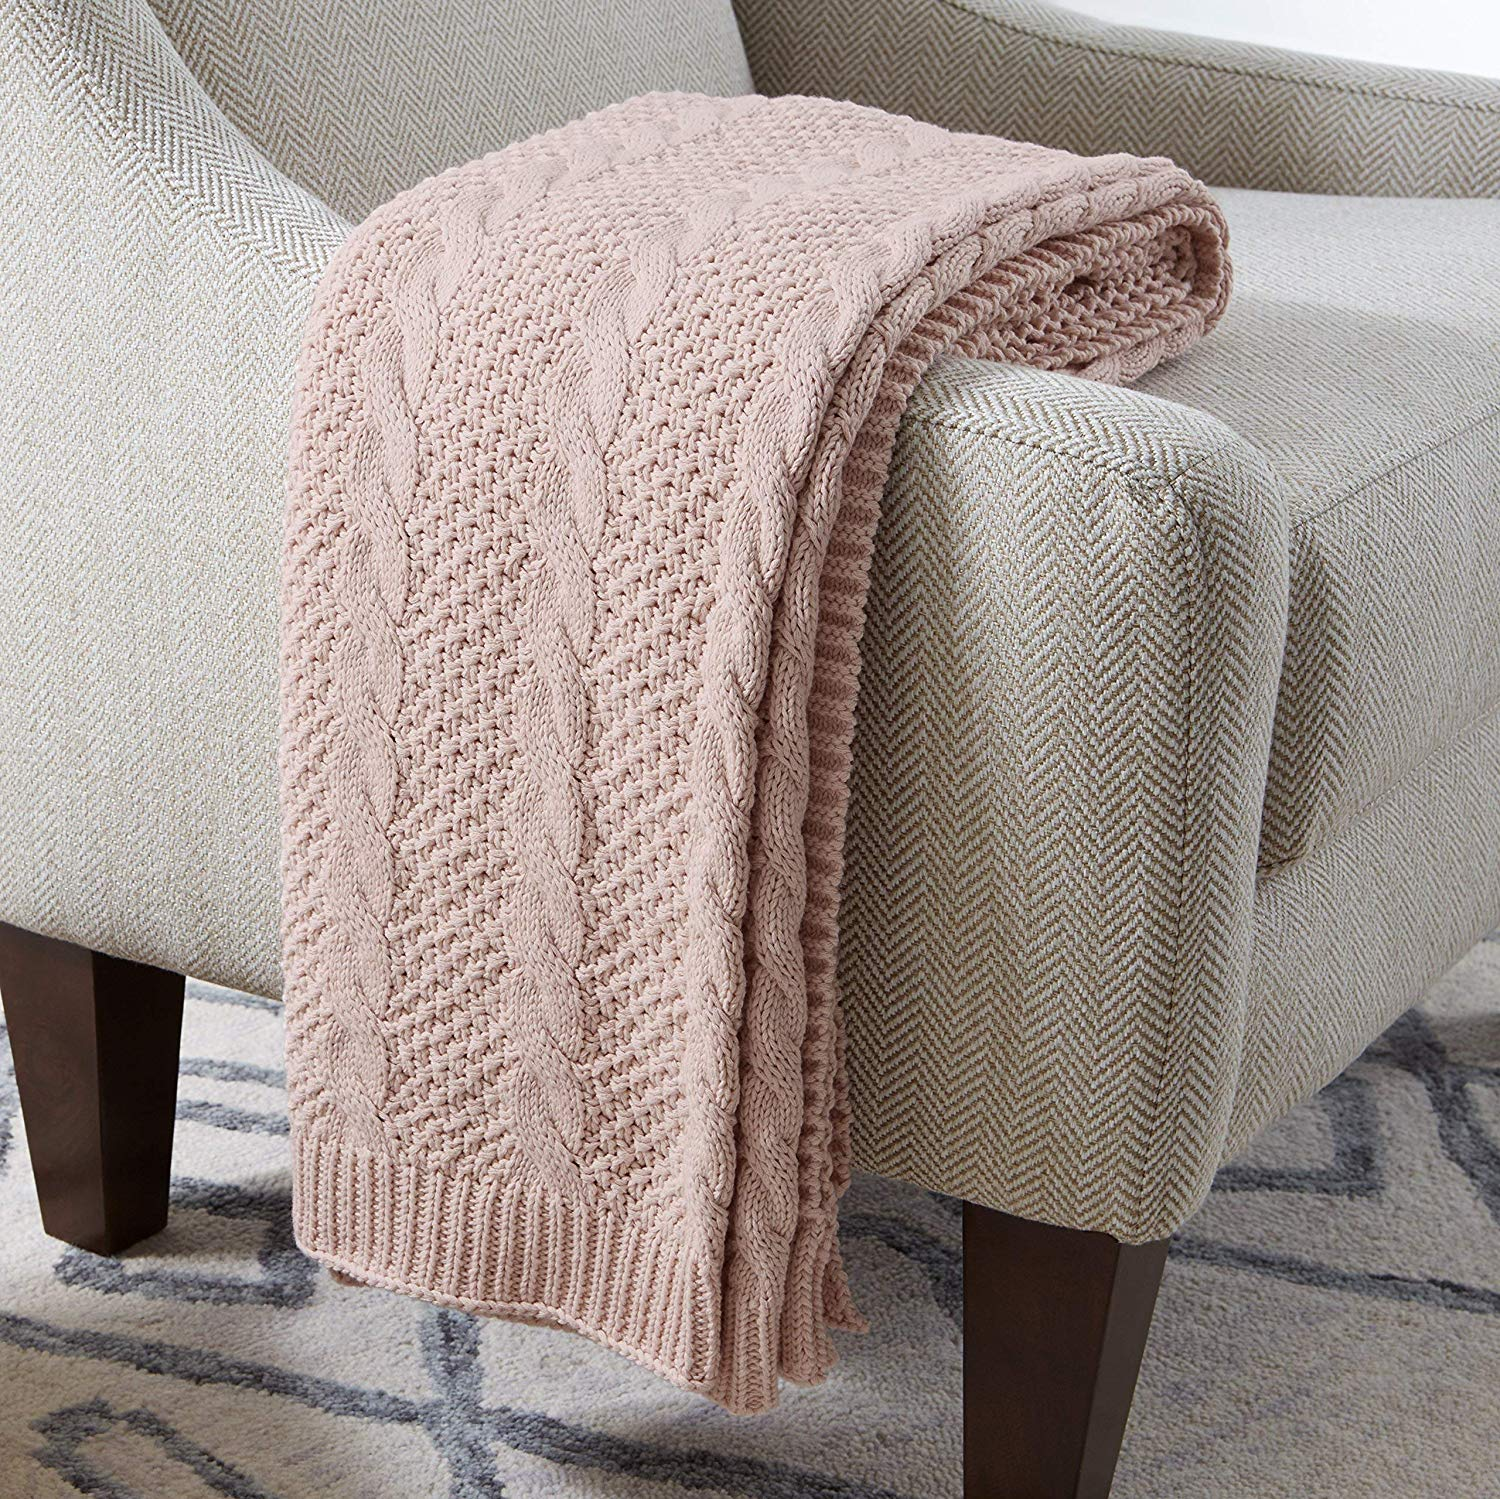 Stone & Beam  | Transitional Chunky Cable Knit Throw |  $59.99